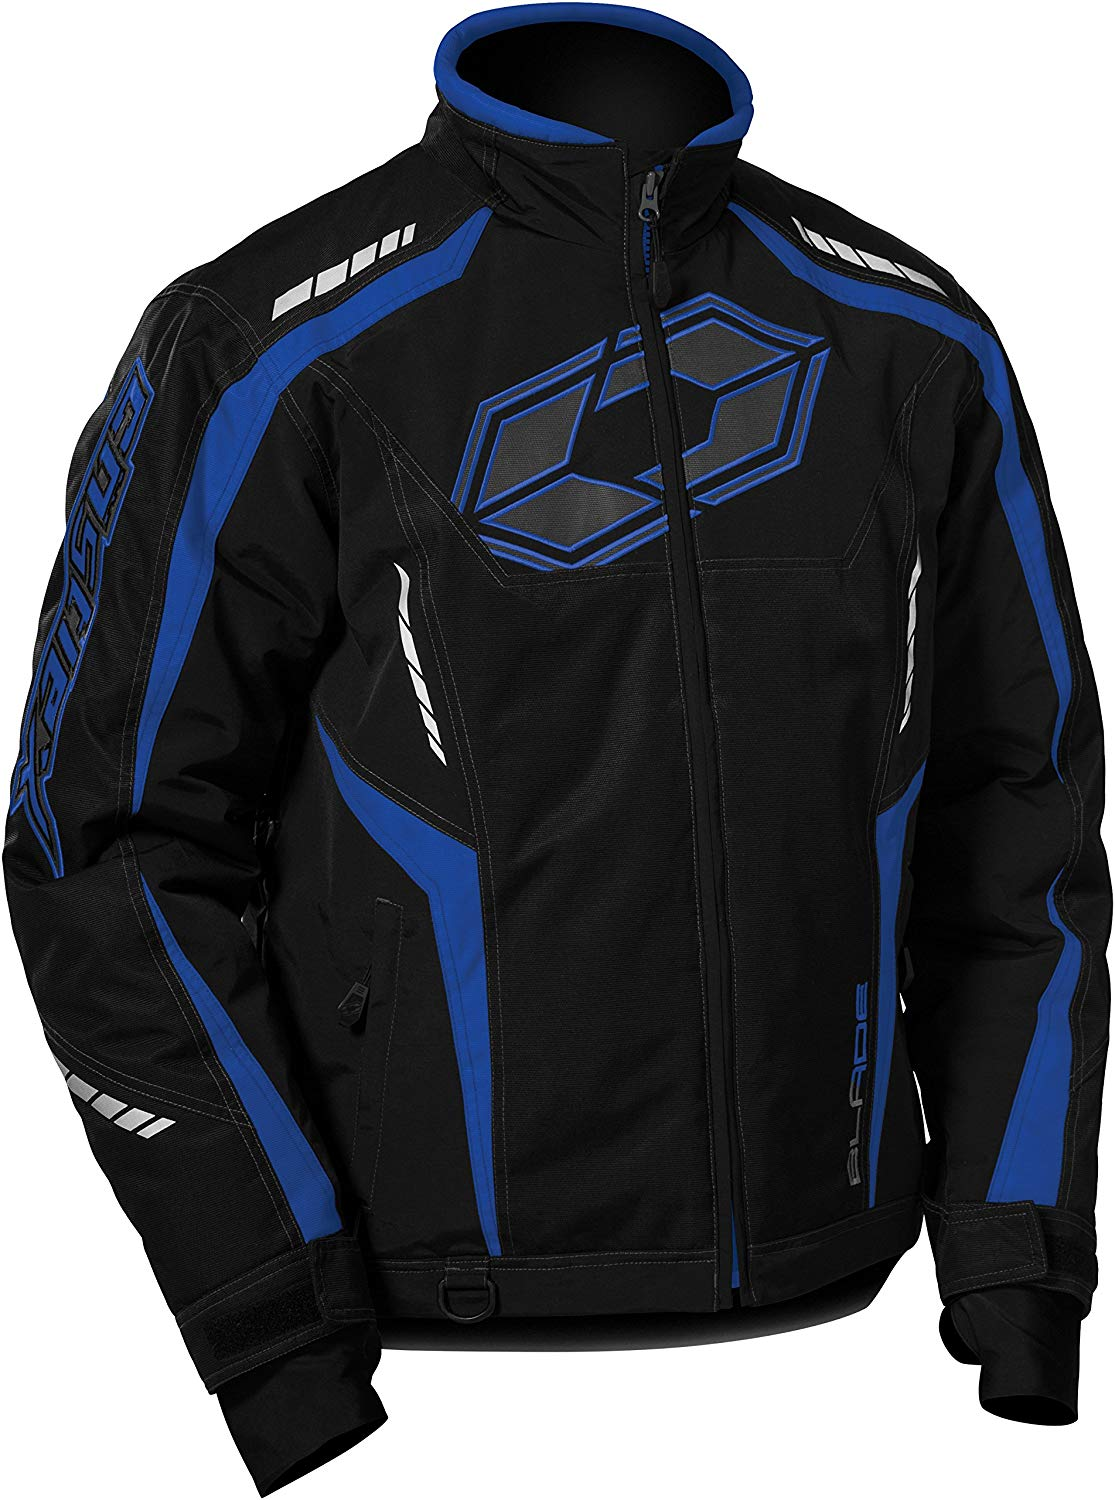 Castle Blade Snowmobile Cold Weather Winter Snow Jacket Blue Black Men's Medium